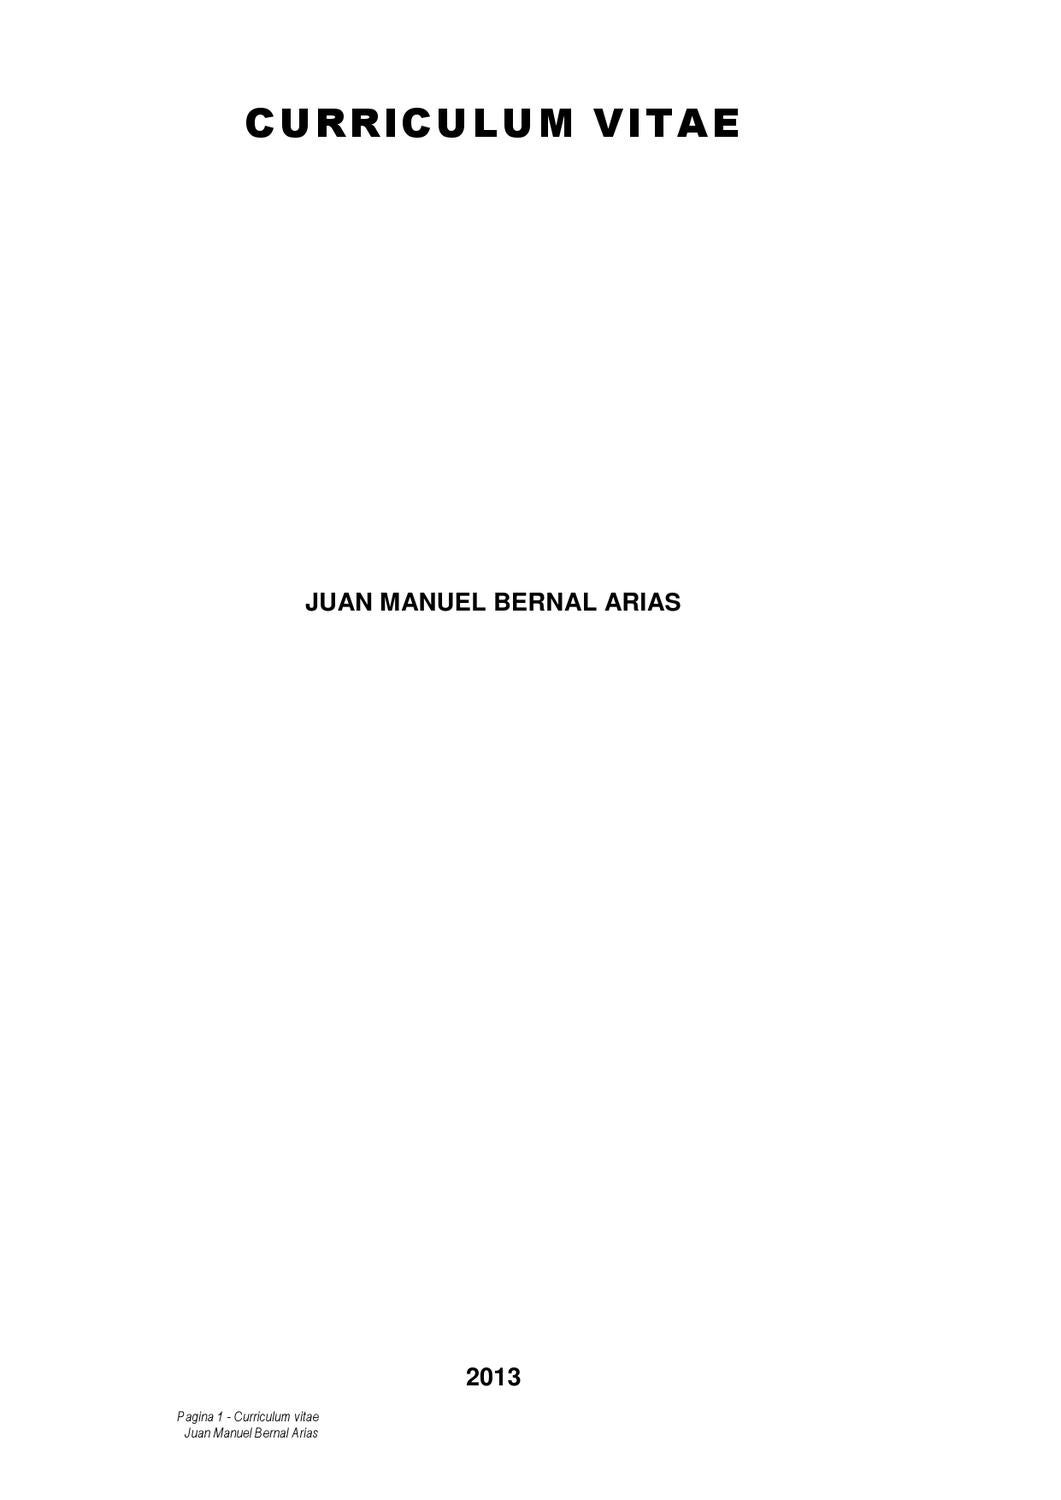 Curriculum Vitae by Juan Manuel Bernal Arias - issuu